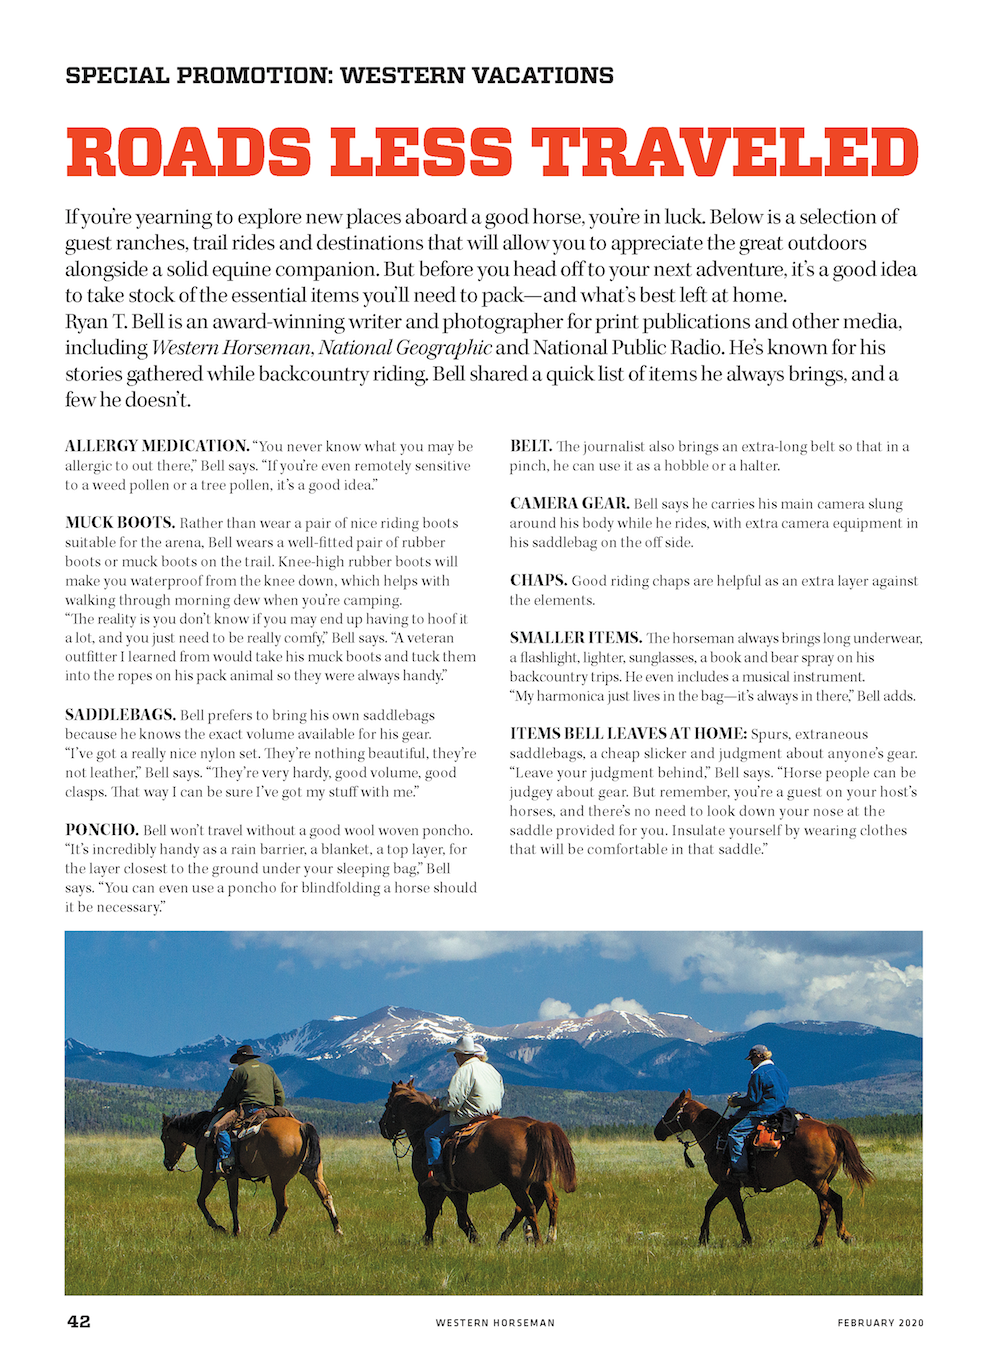 Western Horseman magazine Western Vacation special ad section first page